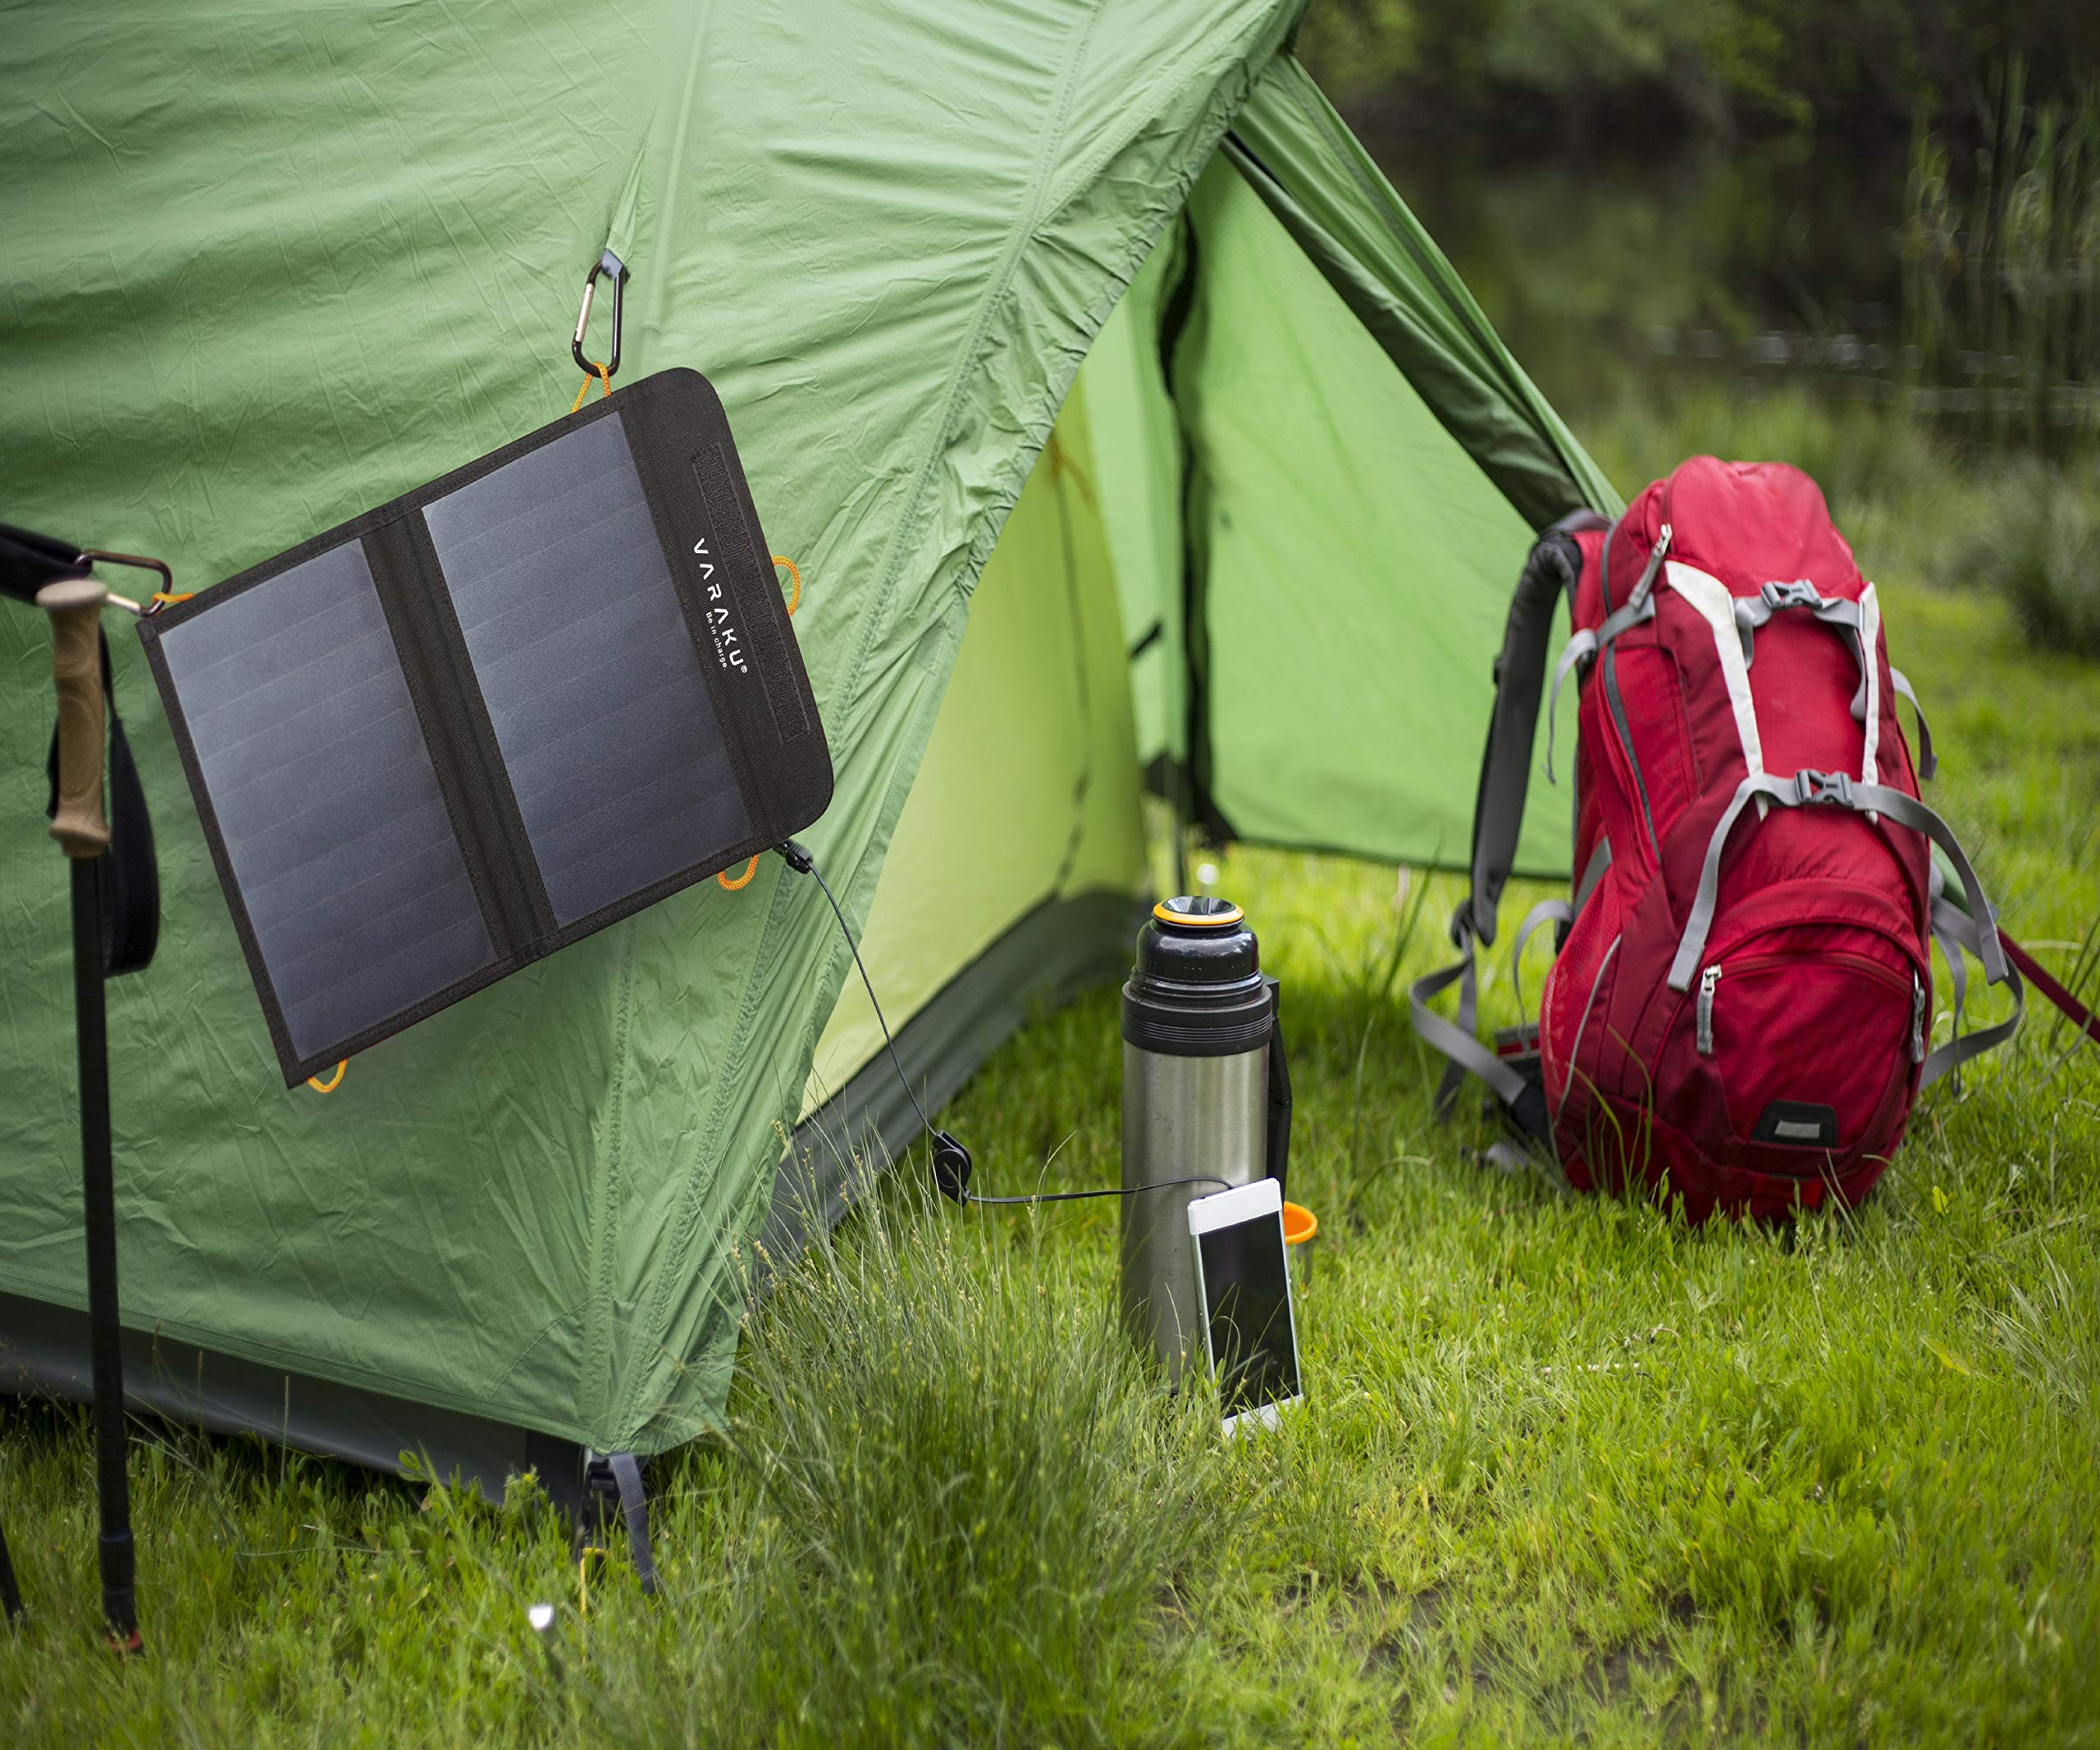 Portable Solar Charger 10W - Dual USB Solar Panel Foldable – Best Power for, iPhone, X, 8, 7, 6s, iPad, Cell Phone Android & Electronic Devices - Waterproof Sun Phone Charger for Camping & Hiking by VARAKU (Image #5)